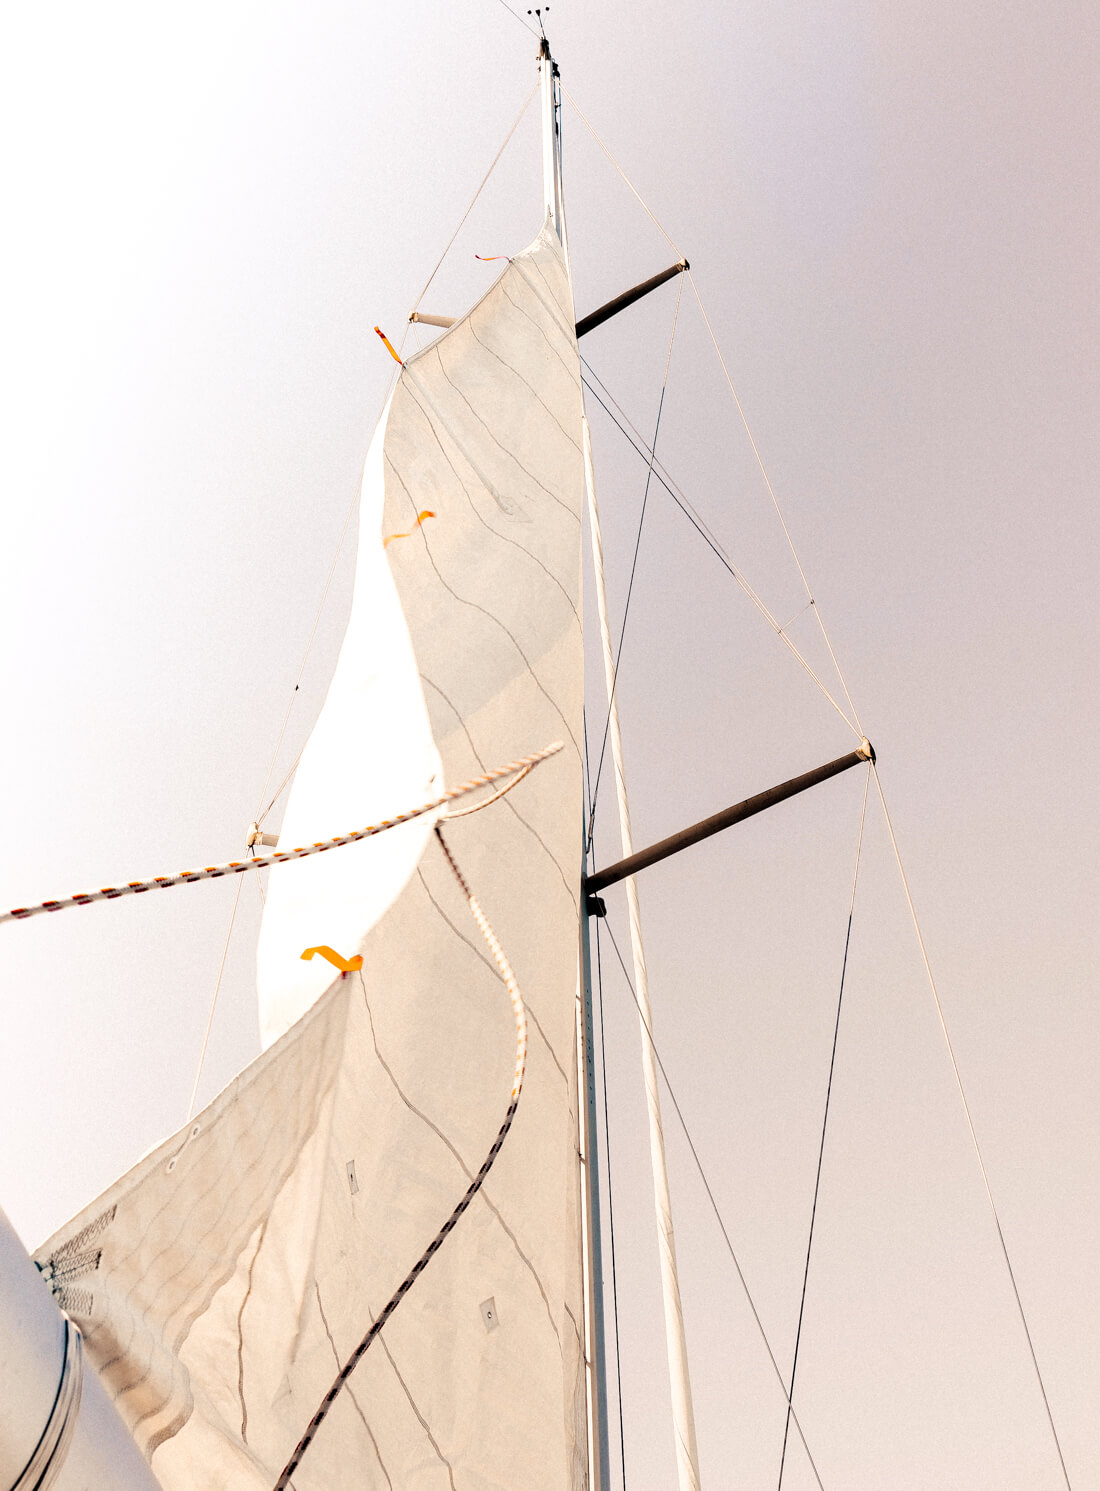 Looking up at the sail of a sail boat in the sunshine